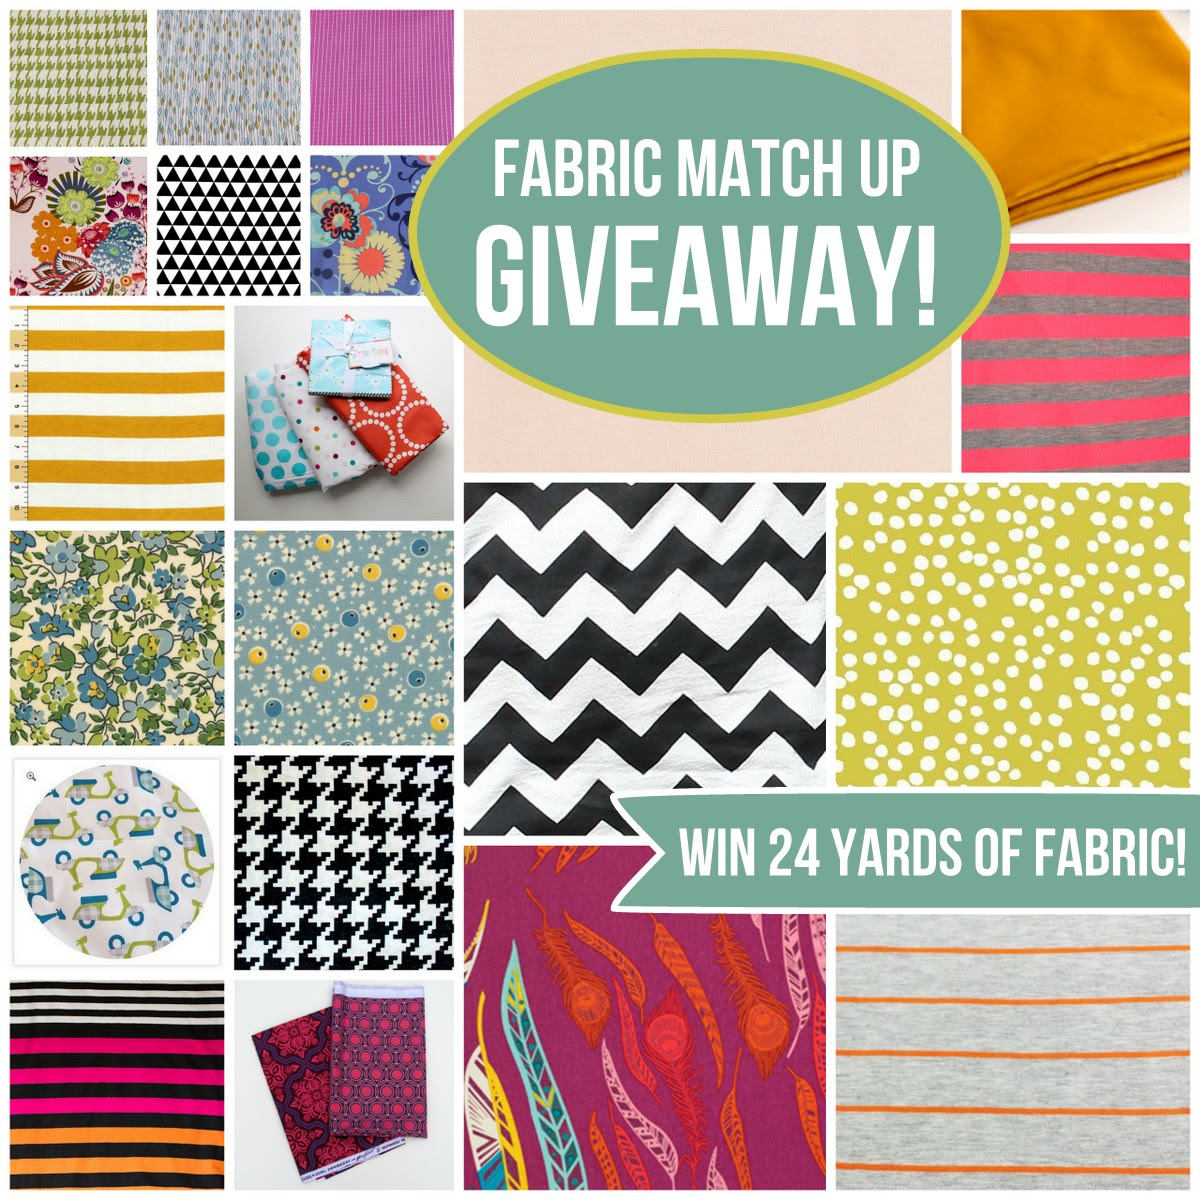 fabric match up giveaway- win 24 yards of fabric from your favorite bloggers!